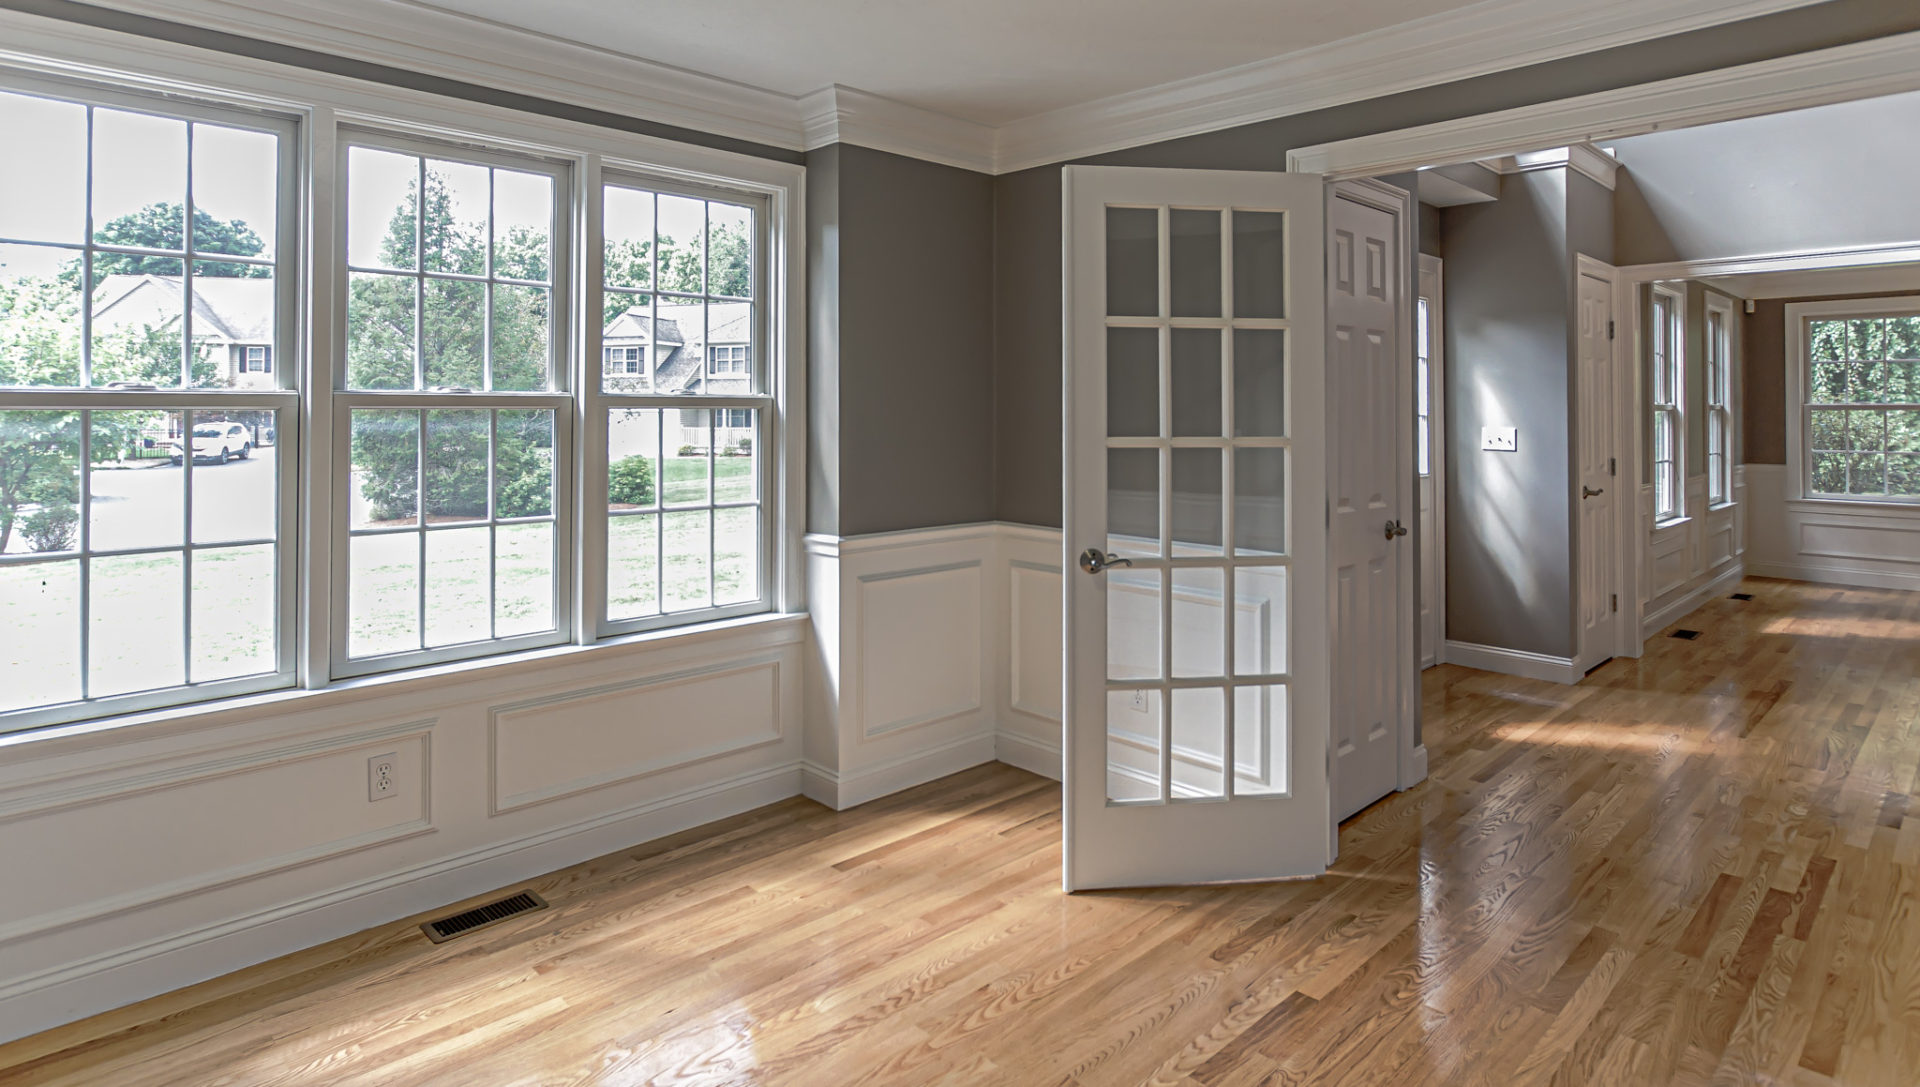 Vacant Home Office in a 2-story colonial style home in Natick, MA.